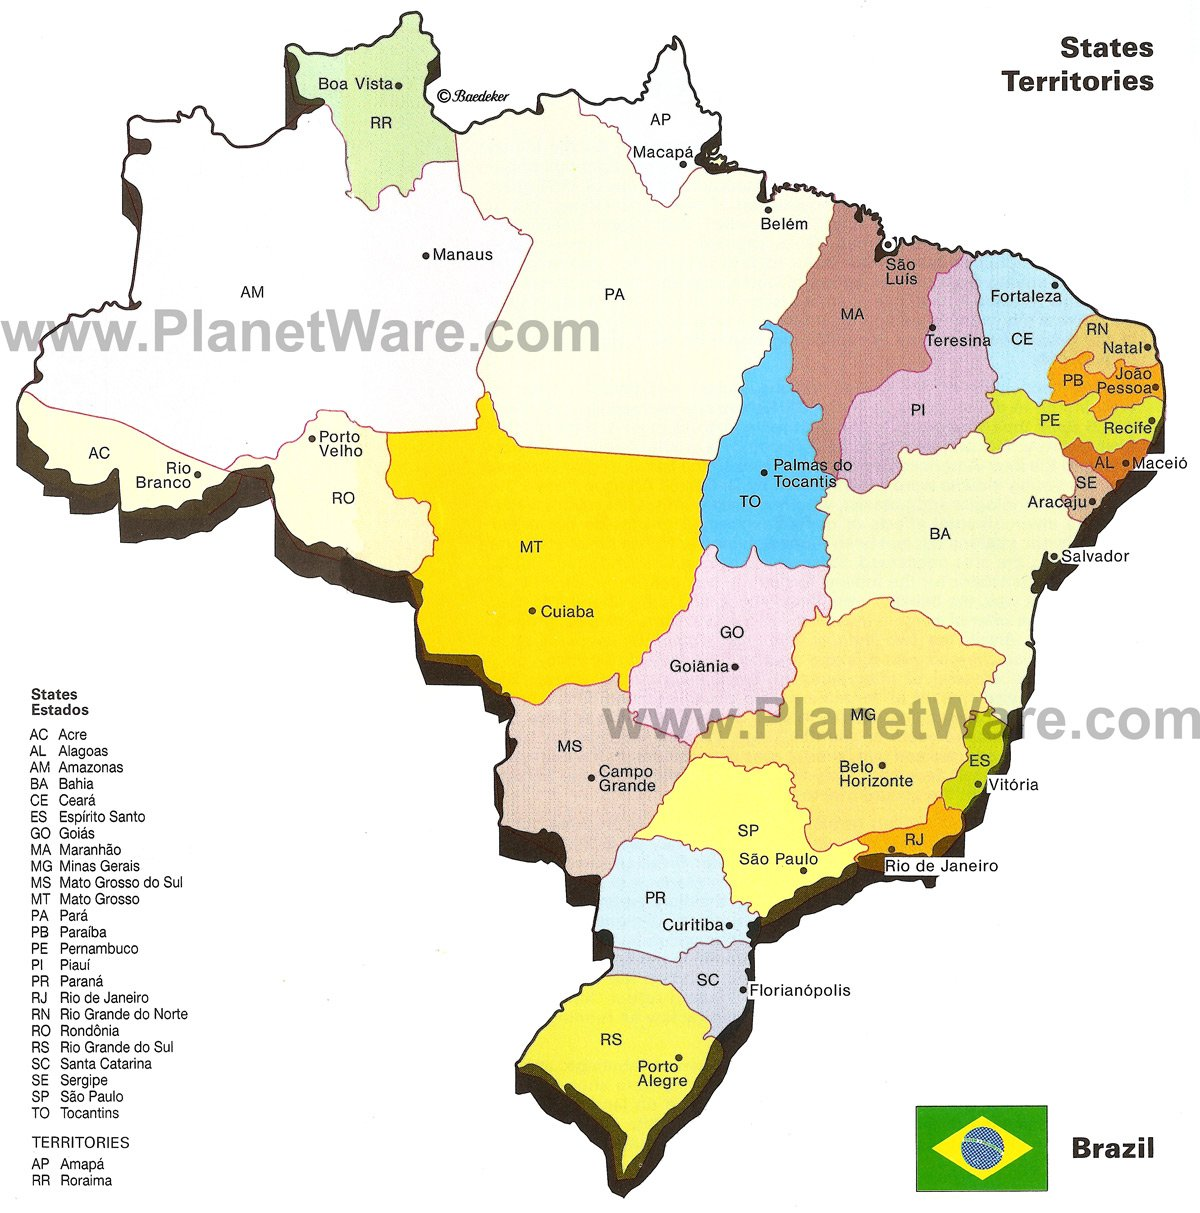 Map Of Brazil States Major Citites PlanetWare - Brazil map